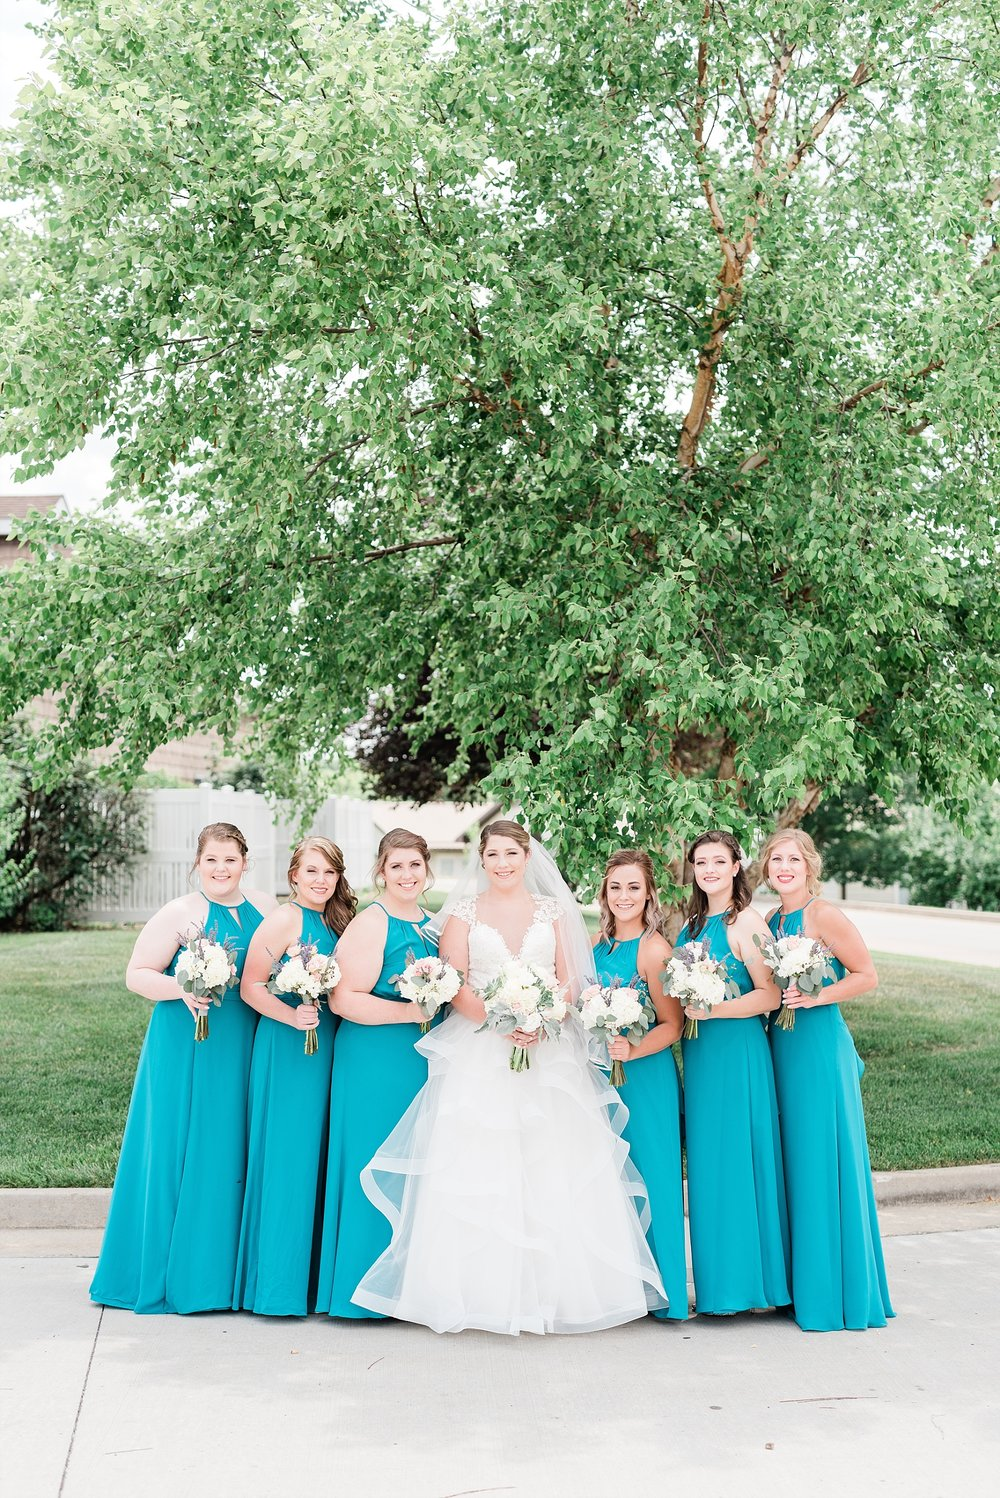 Baurichter Wedding at Stoney Creek Inn Columbia Missouri by Kelsi Kliethermes Photography_0004.jpg